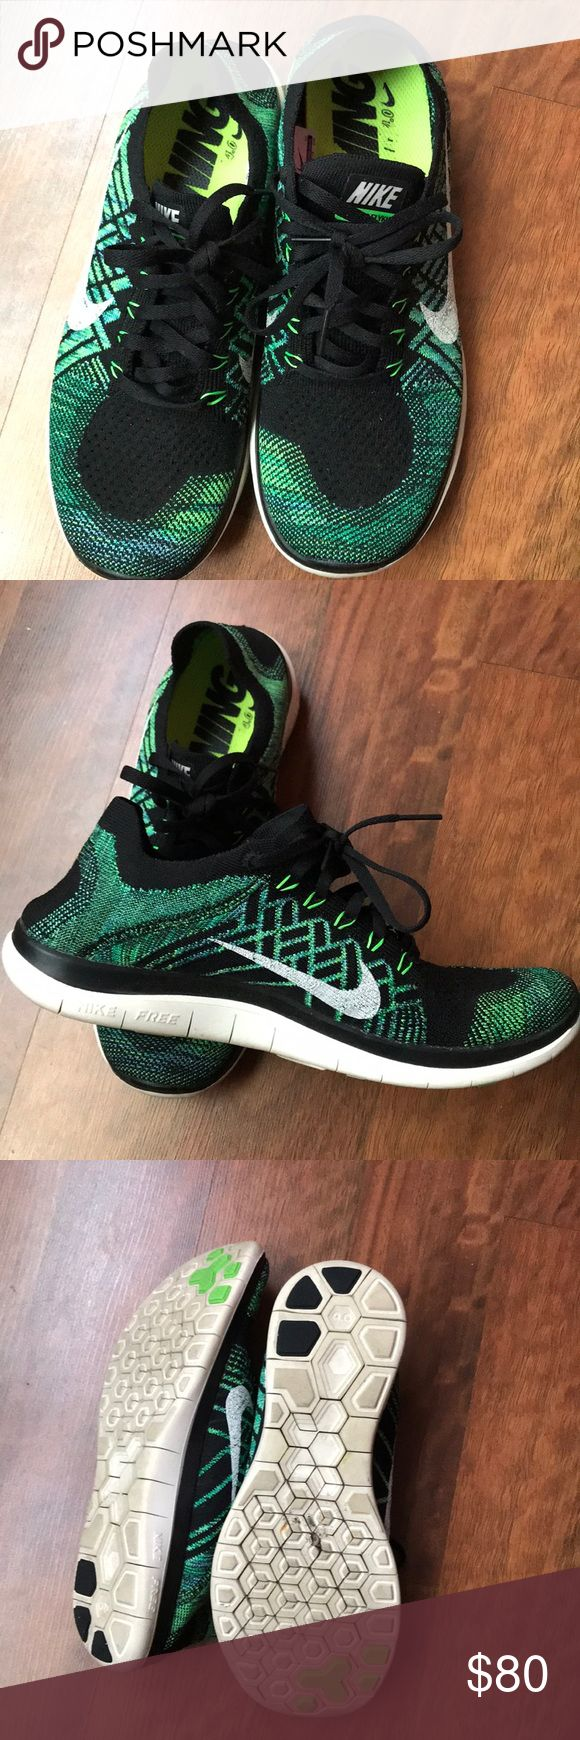 🌿NIKE FREE 4.0 FLYKNIT🌿 Preowned, excellent condition, rarely worn, like new with box. Nike Shoes Athletic Shoes